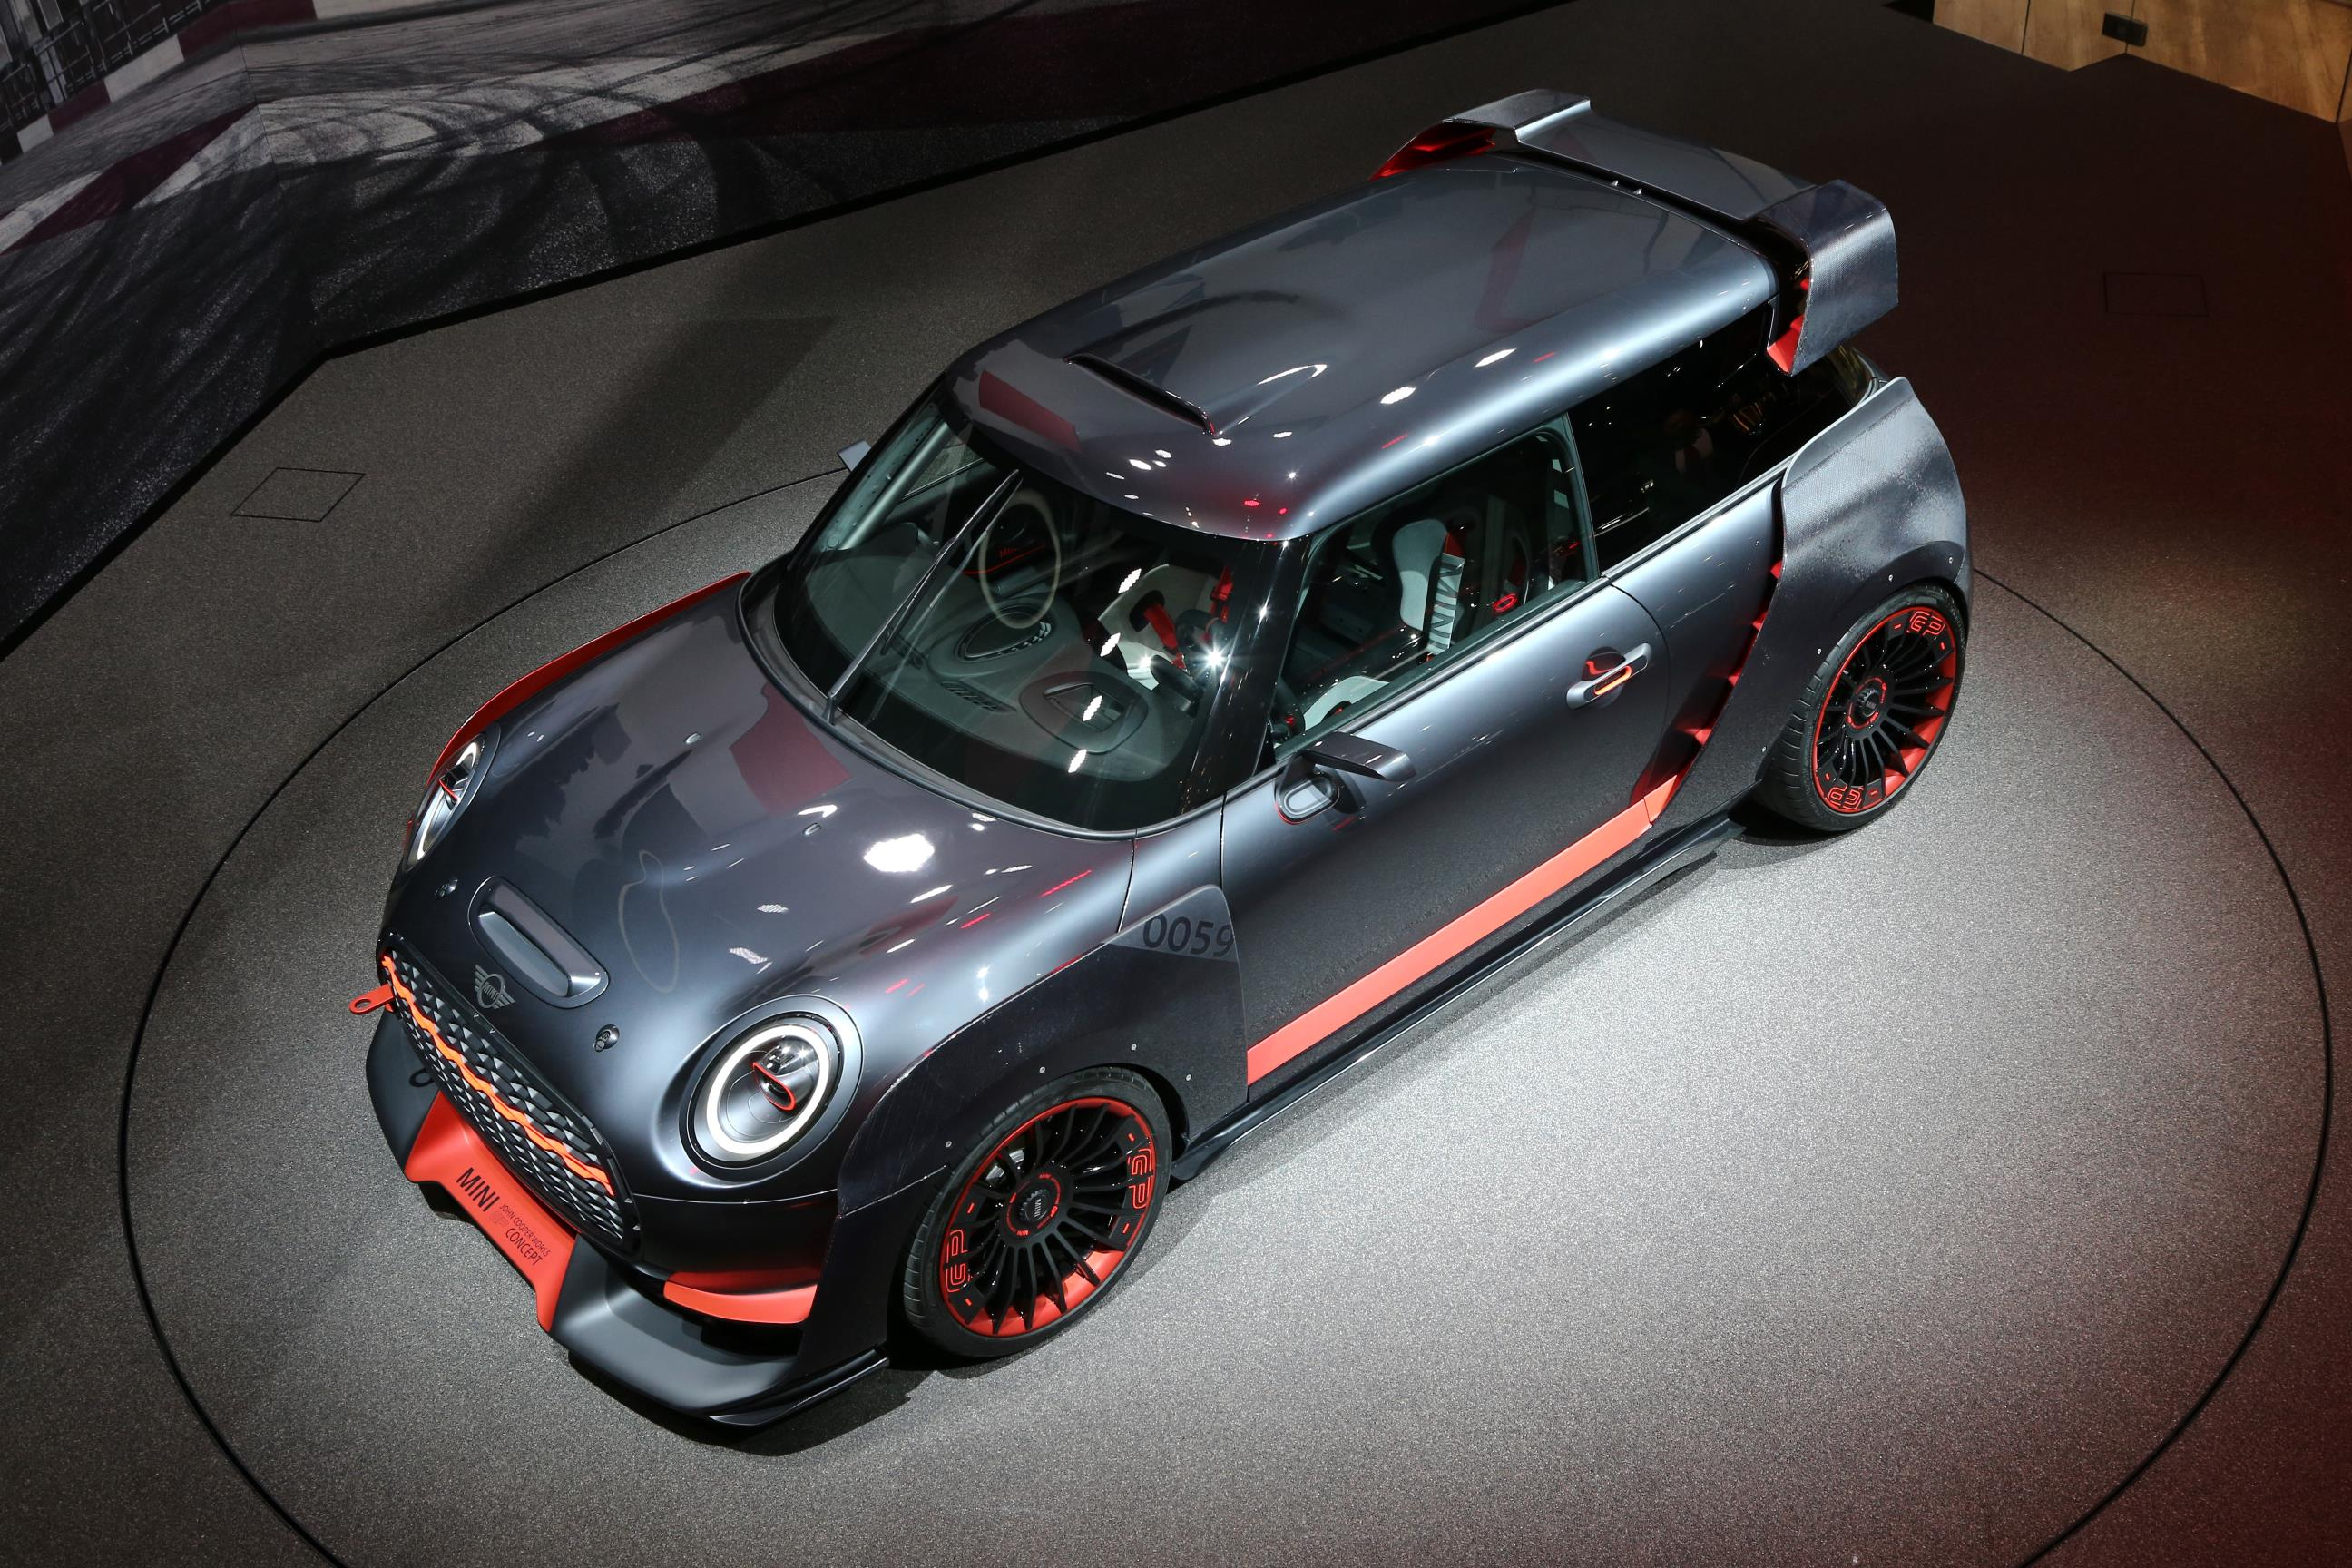 2020 Mini Jcw Gp Spotted Testing Exclusive Details Revealed